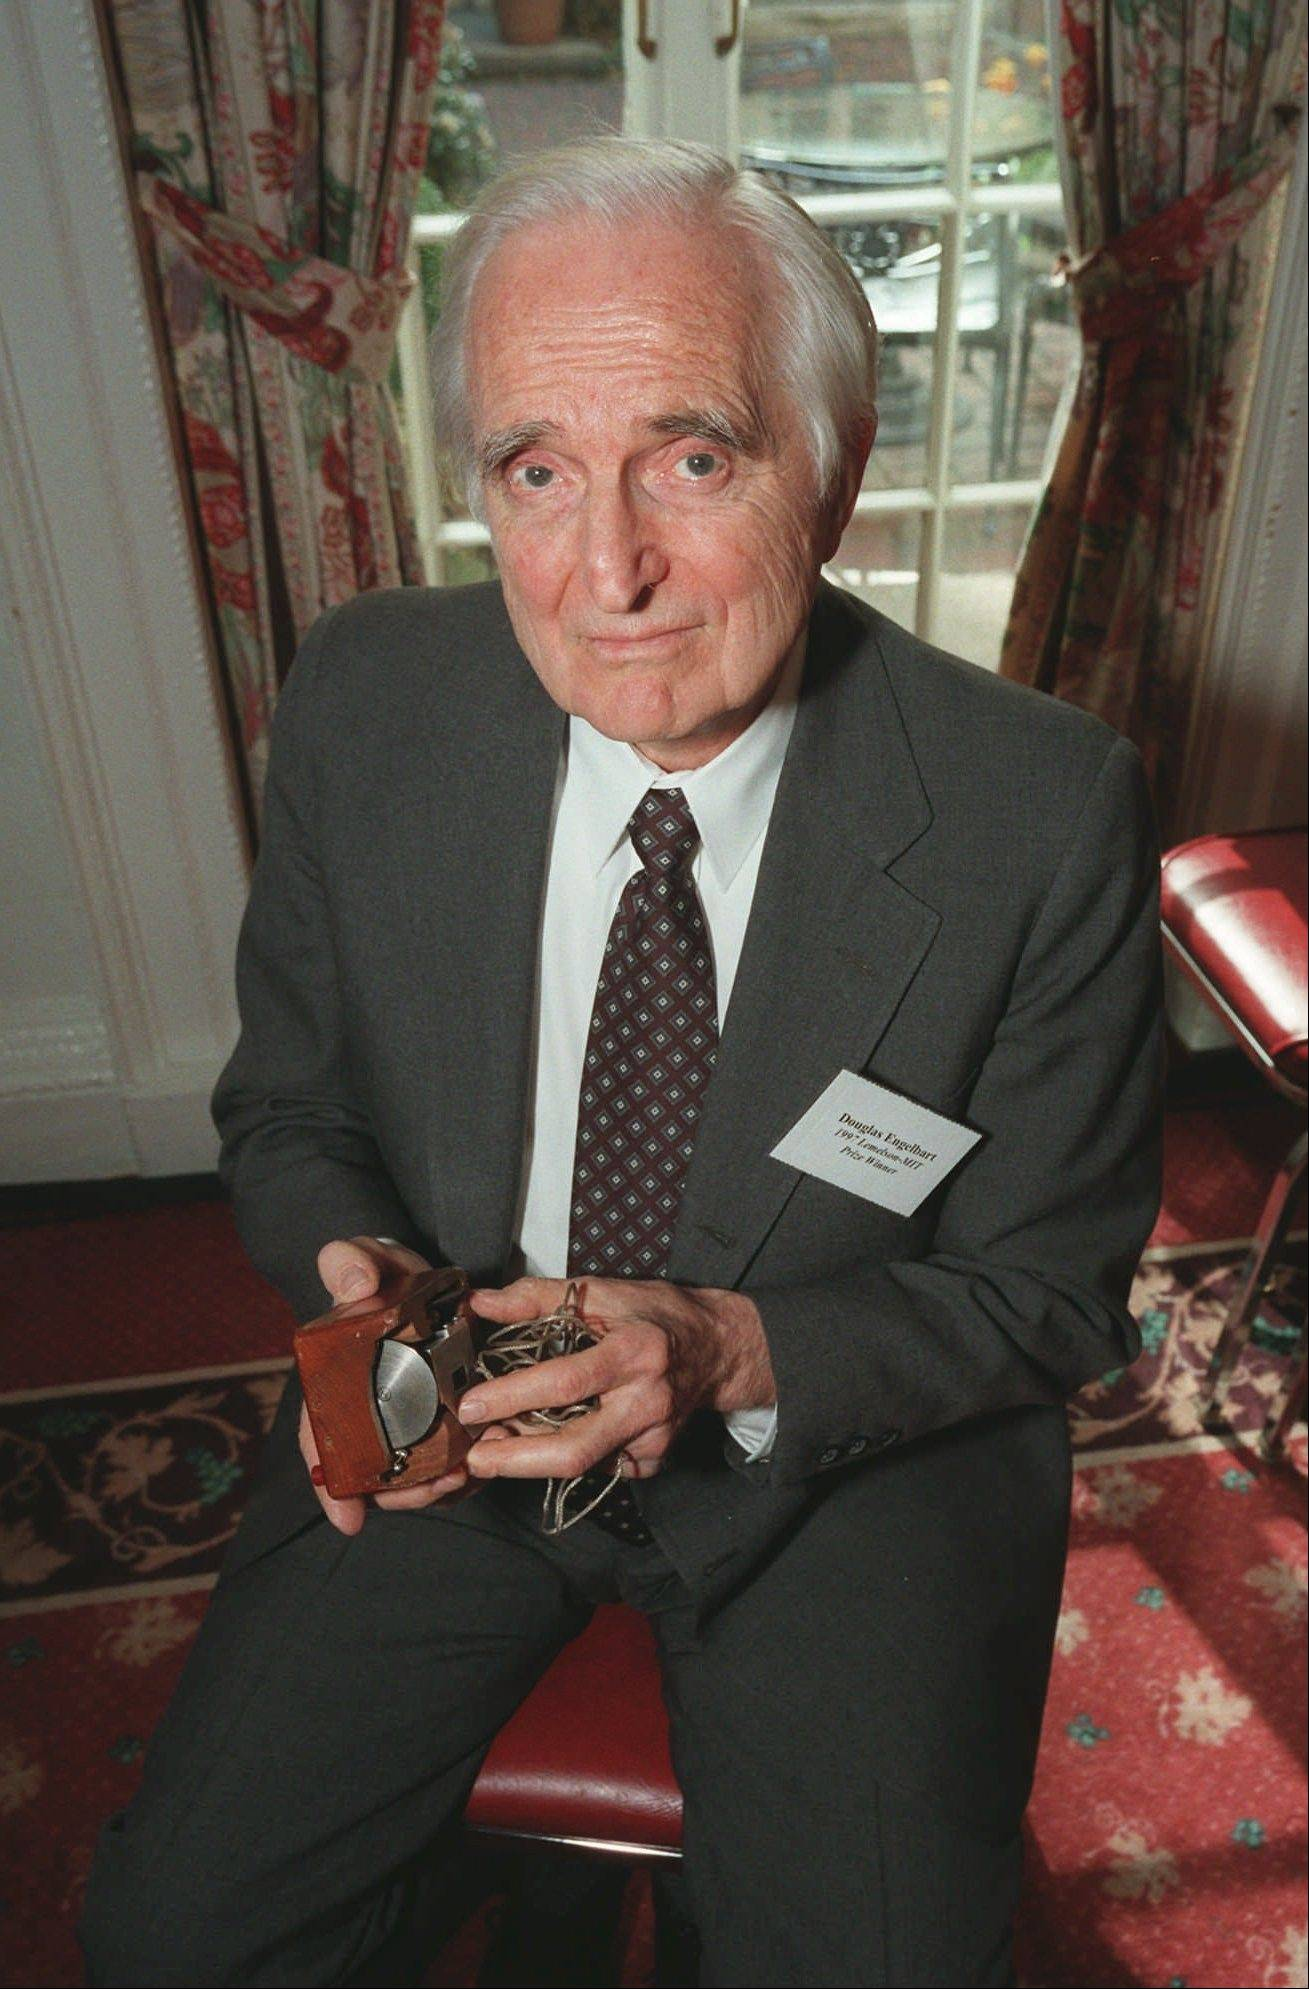 In this April 9, 1997 file photo, Doug Engelbart, inventor of the computer mouse and winner of the half-million dollar 1997 Lemelson-MIT prize, poses with the computer mouse he designed, in New York. Engelbart has died at the age of 88.